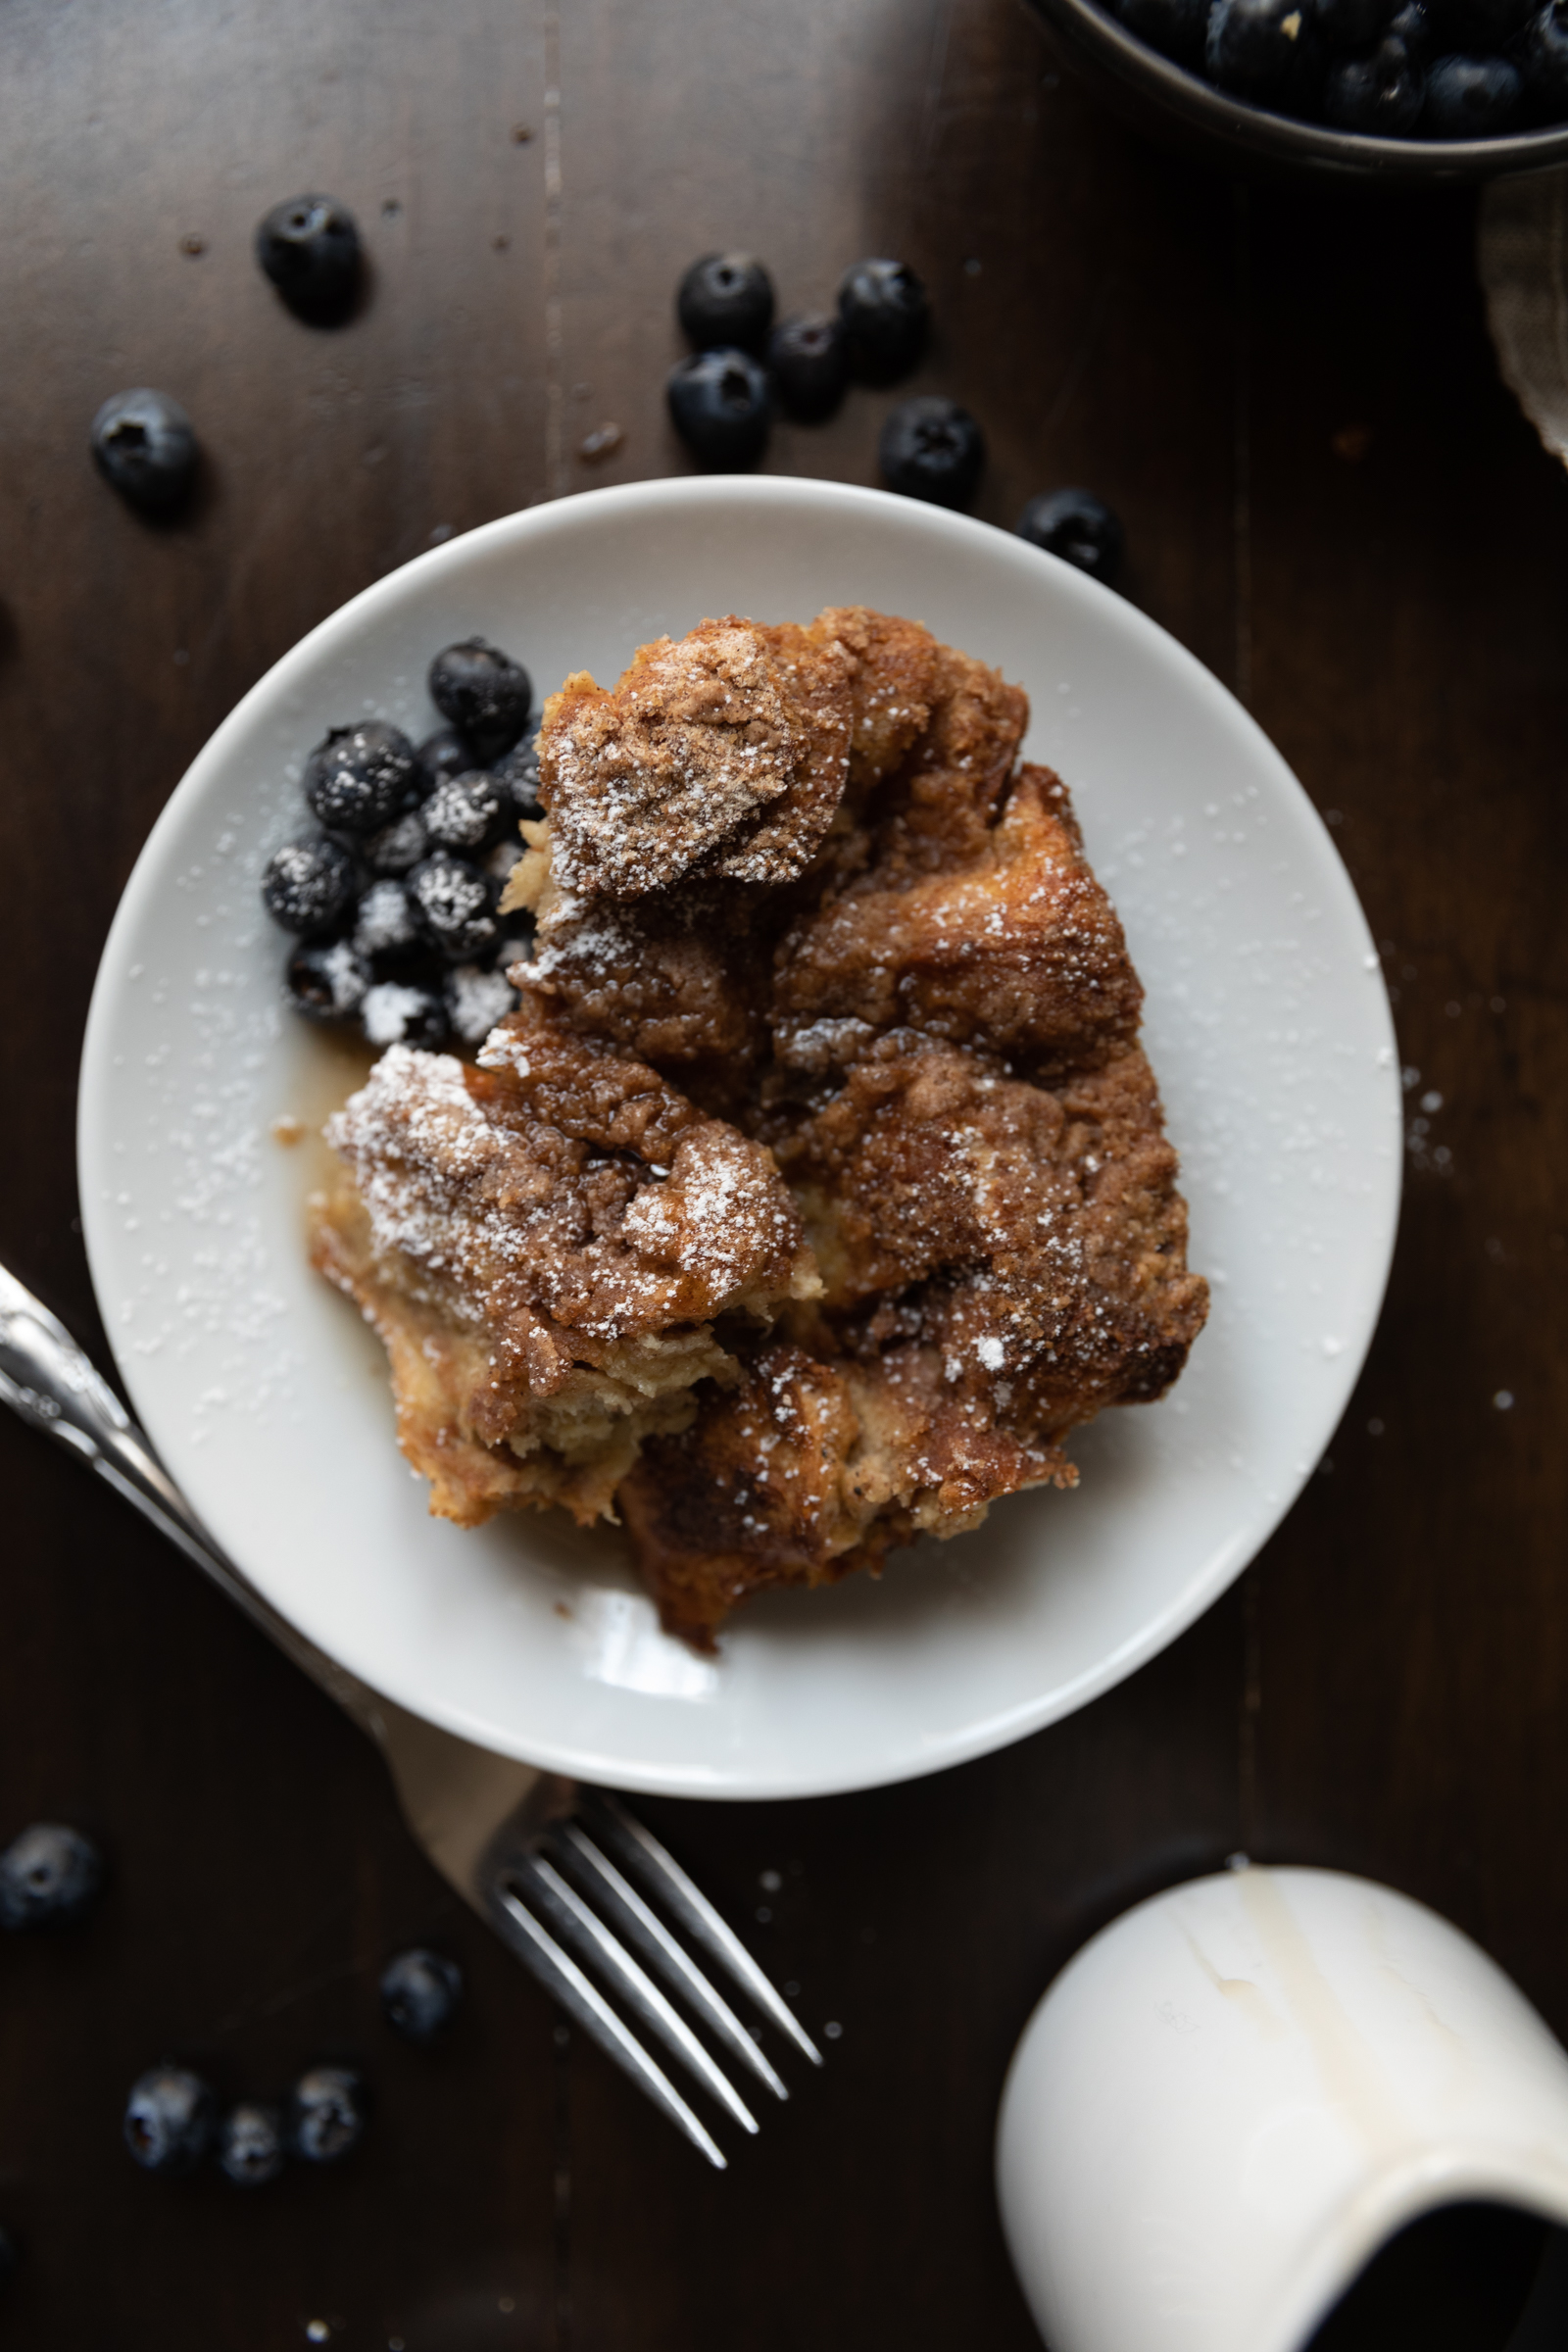 Plate of french toast bake